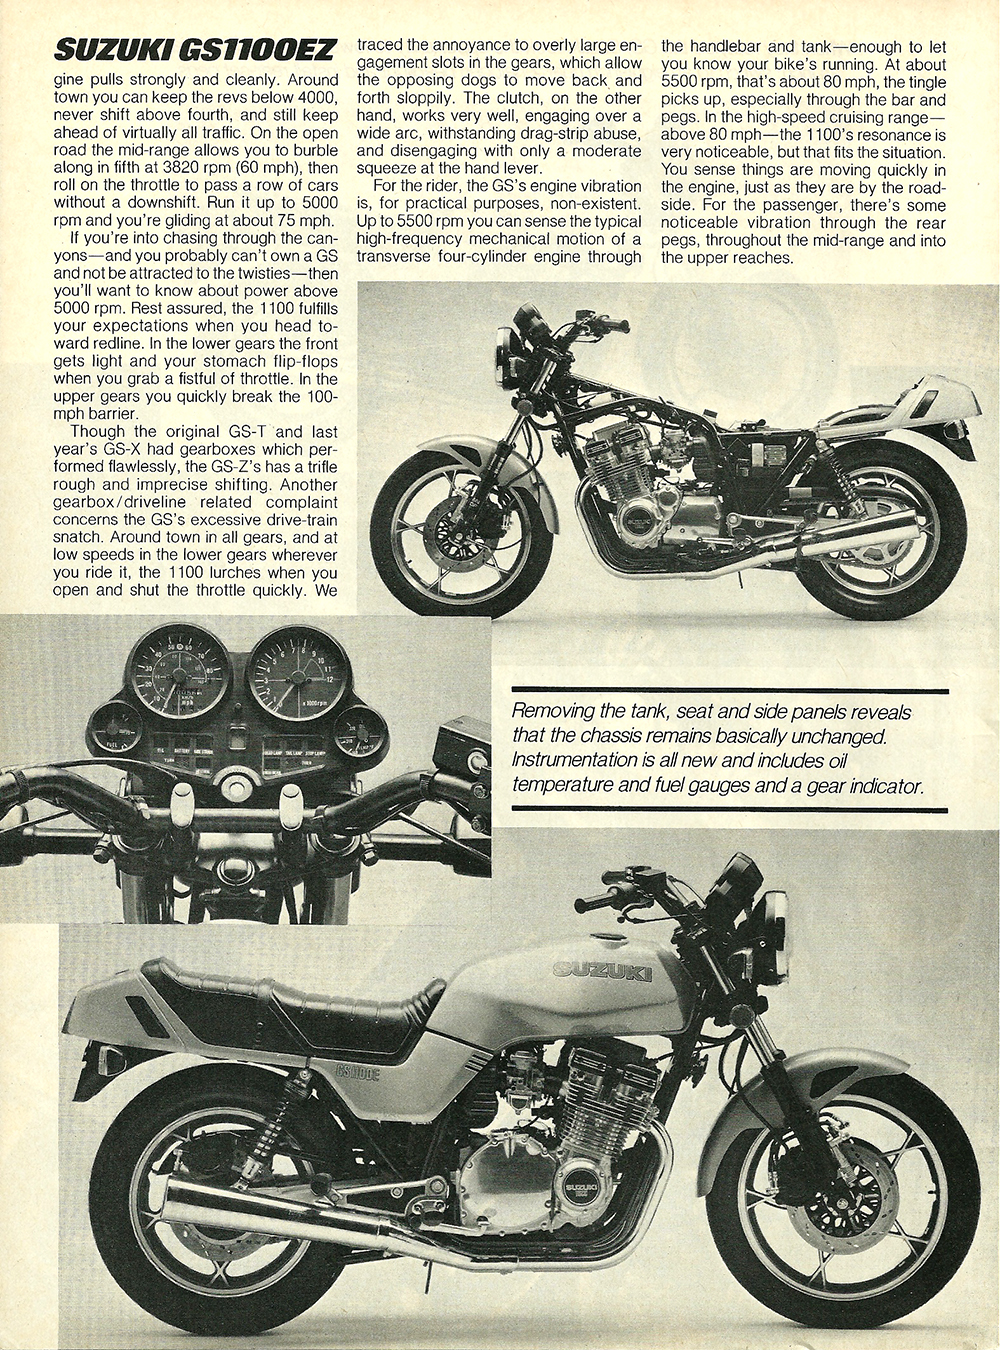 1982 Suzuki GS1100EZ road test 05.jpg